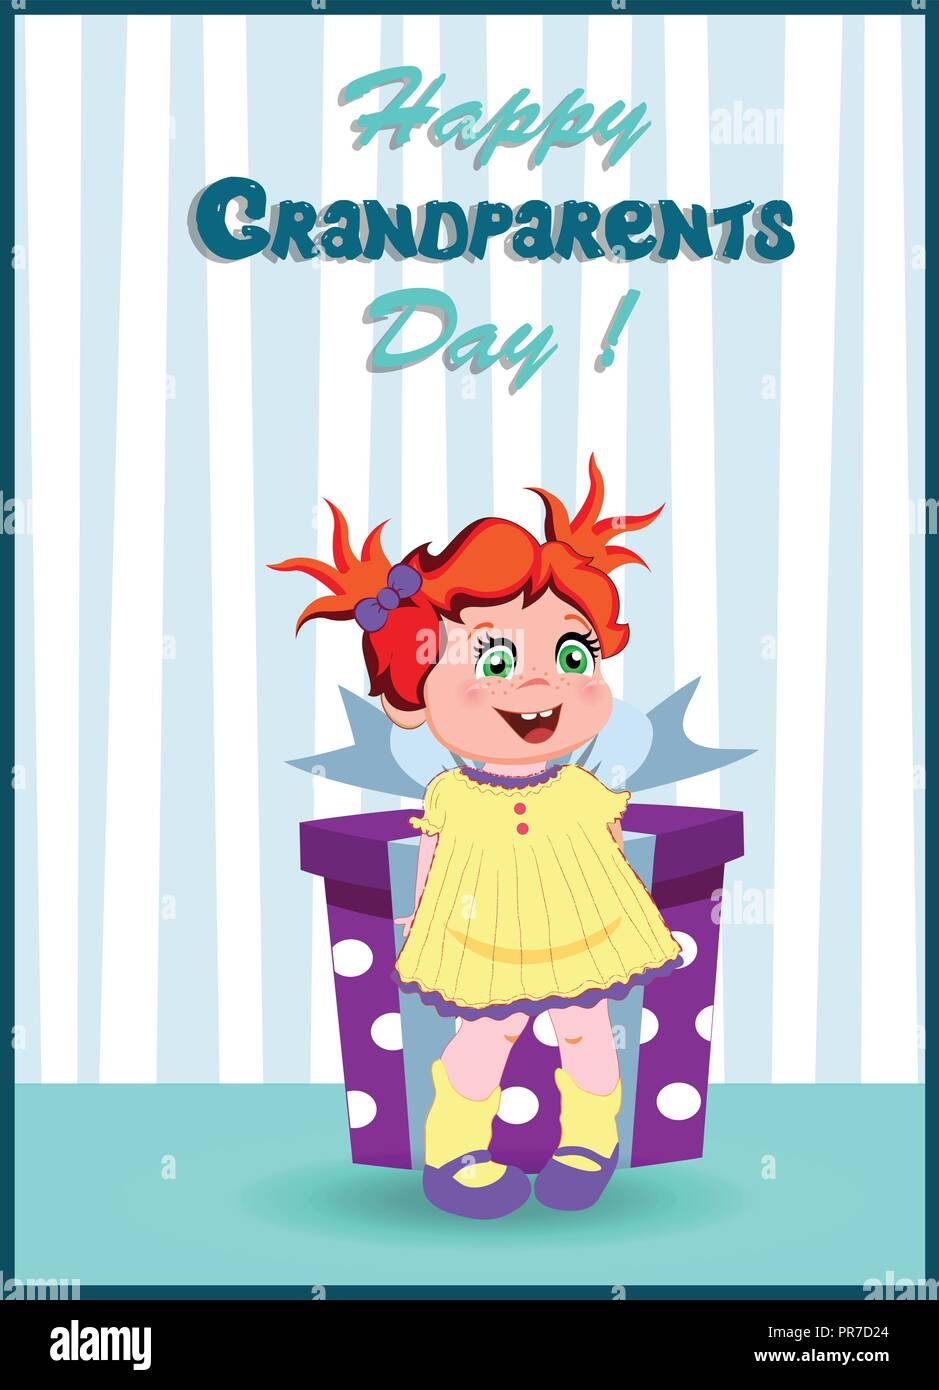 Happy grandparents day greeting card with cute cartoon little girl happy grandparents day greeting card with cute cartoon little girl character with ginger hair wearing yellow dress holding big gift box on striped wal m4hsunfo